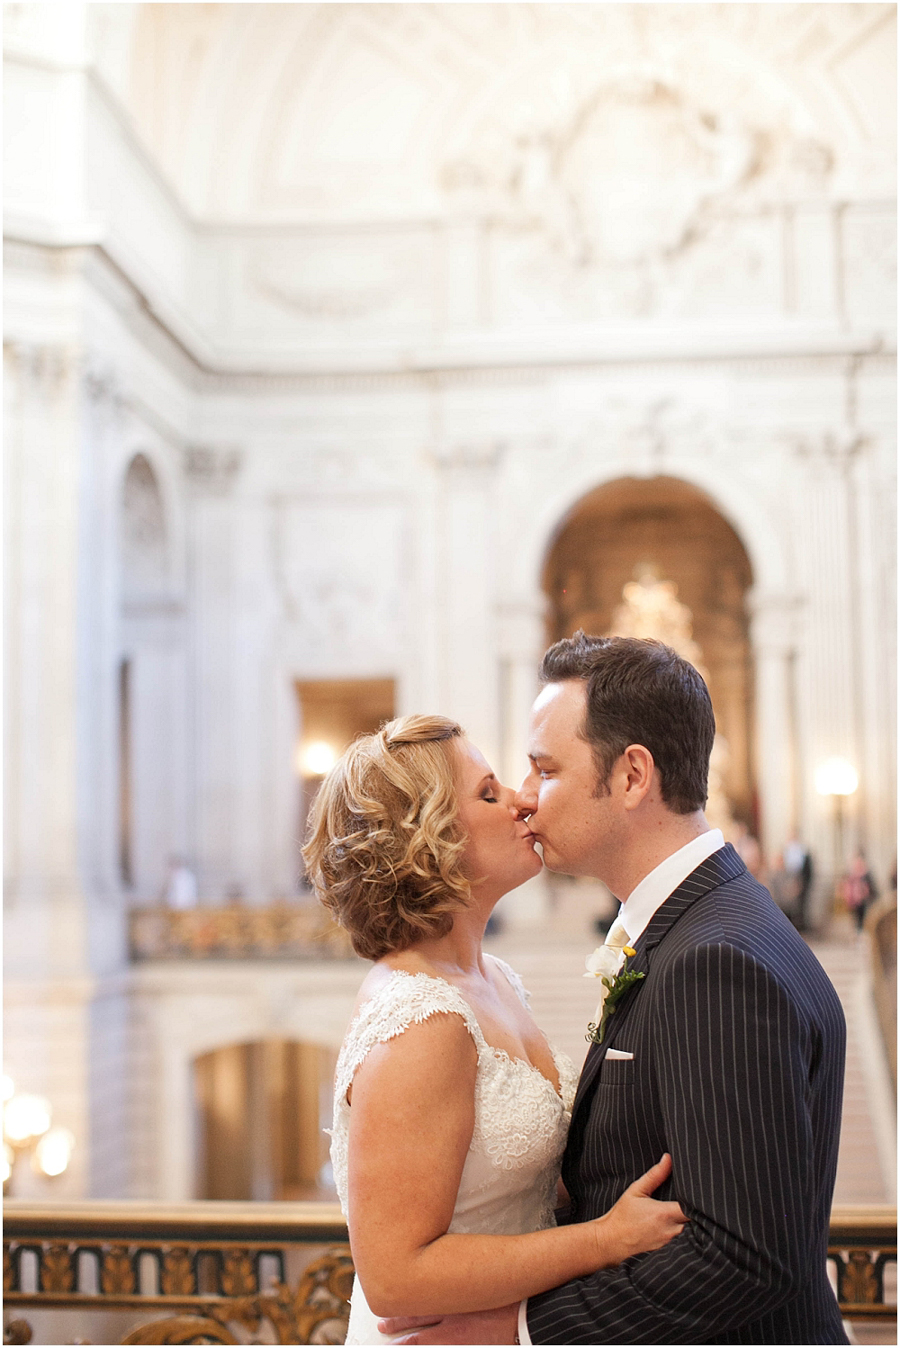 San_Francisco_City_Hall_Wedding_Thackery_32.jpg